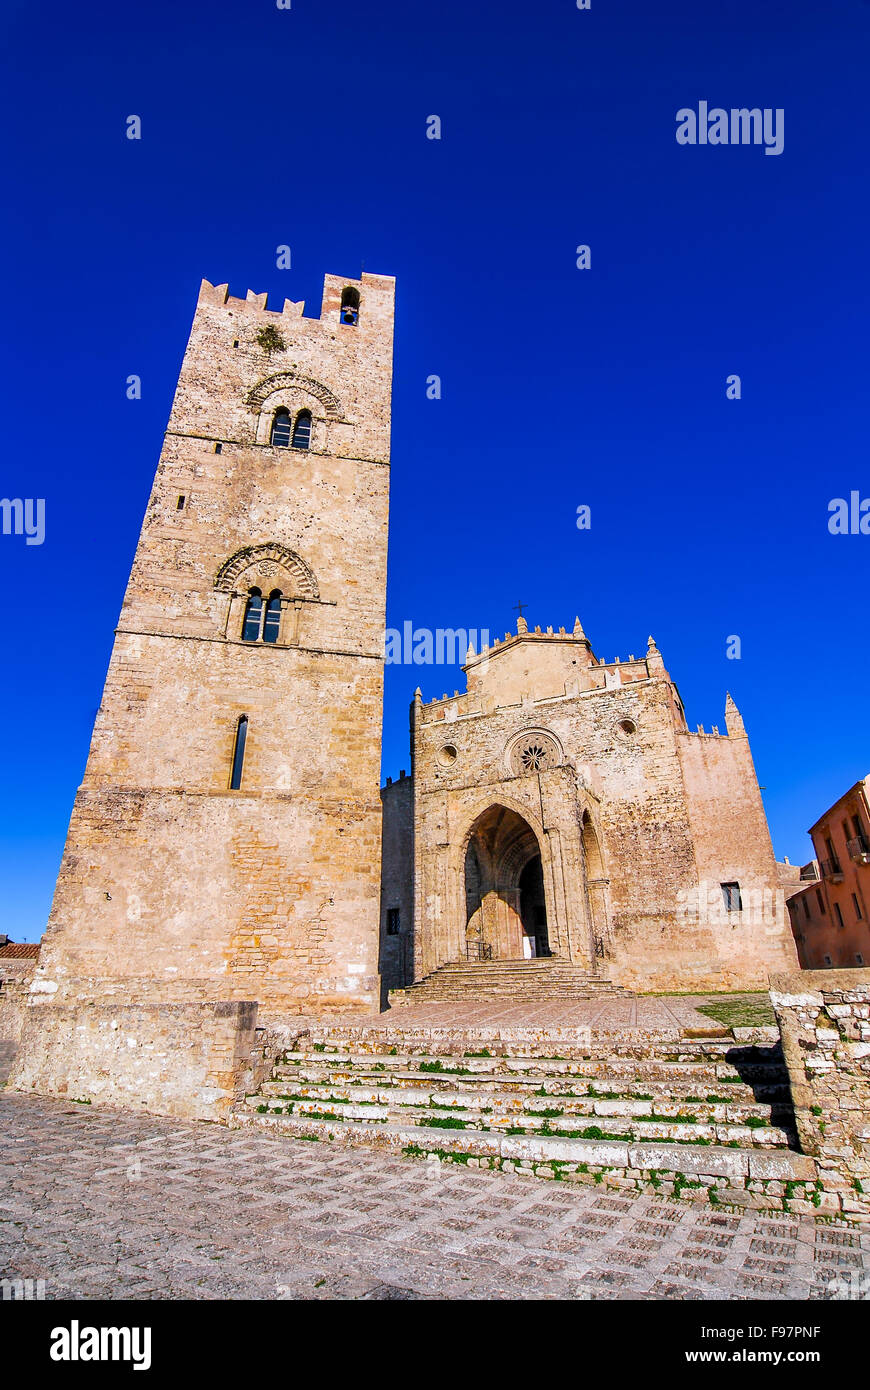 Erice, Sicily. Chiesa Madre (Matrice), Cathedral of Erix dedicated to Our Lady of the Assumption built in 1314. - Stock Image